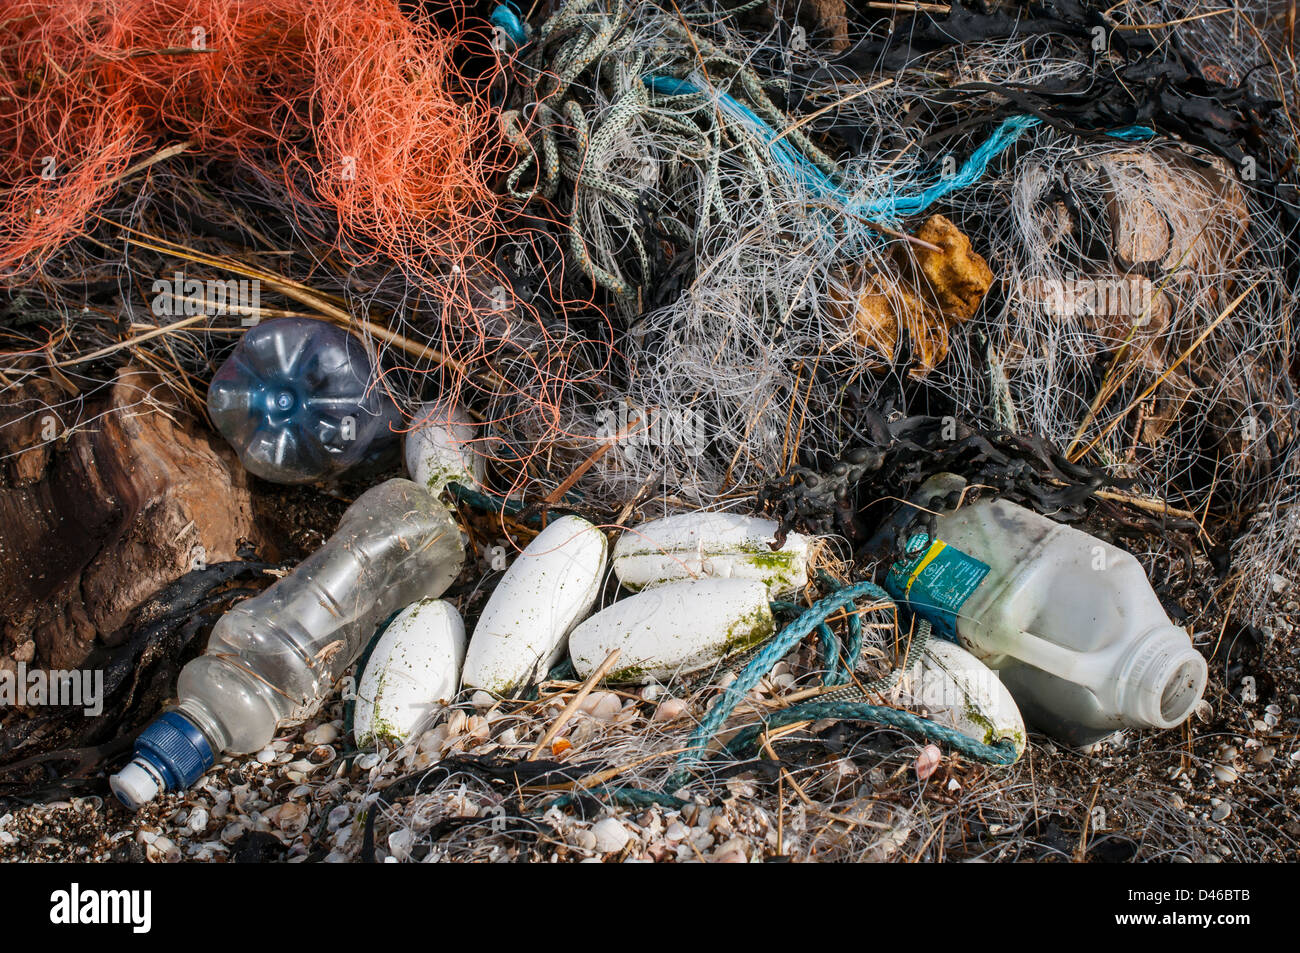 Rubbish and debris washed up by the tide, Stert, Somerset, UK - Stock Image